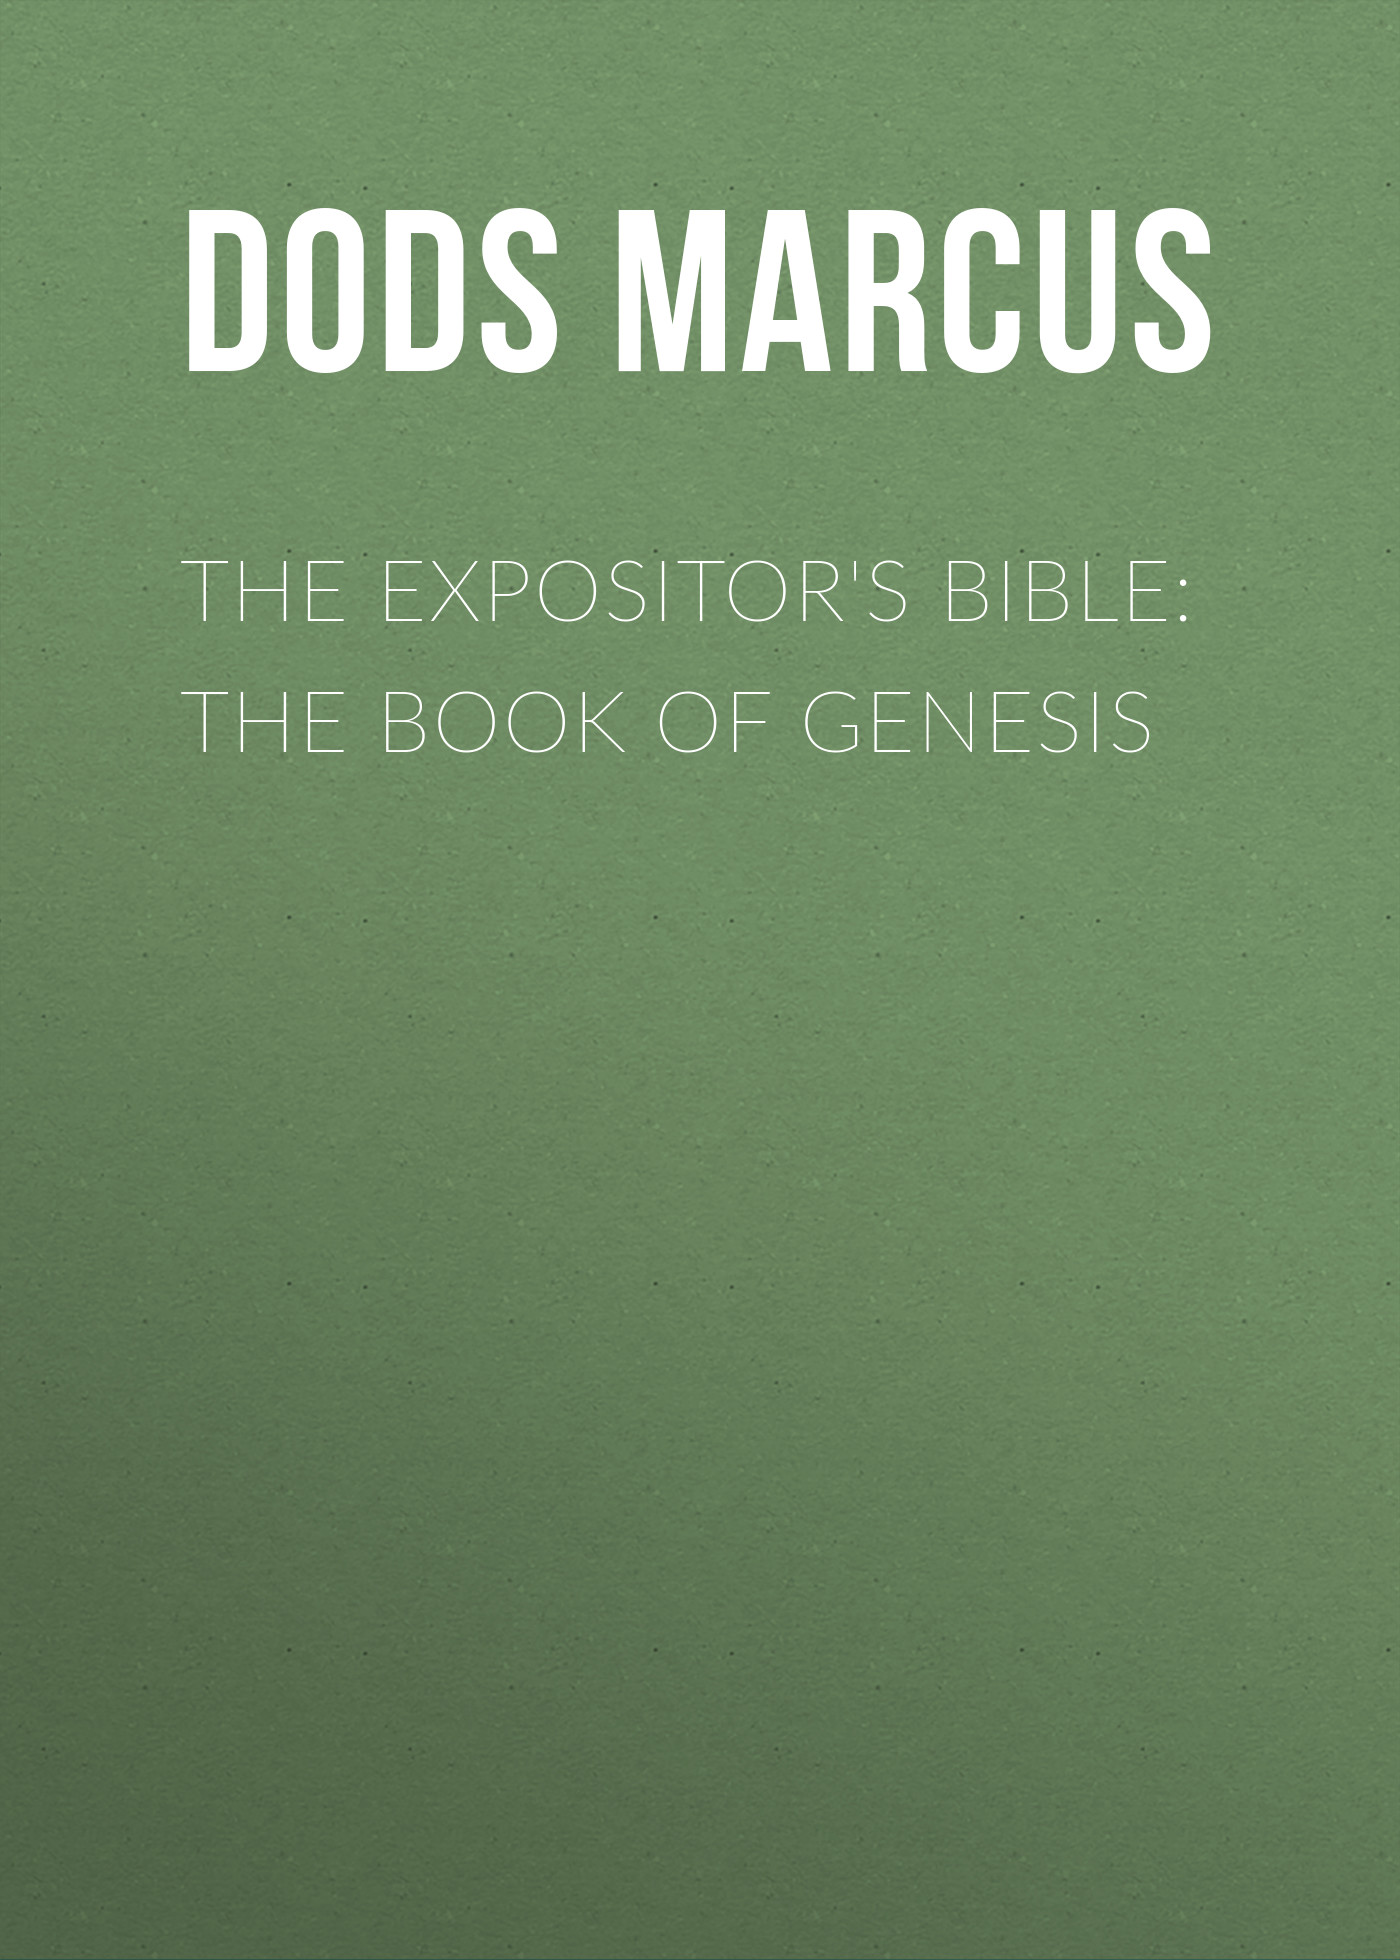 Dods Marcus The Expositor's Bible: The Book of Genesis hoon kim creative bible lessons in genesis